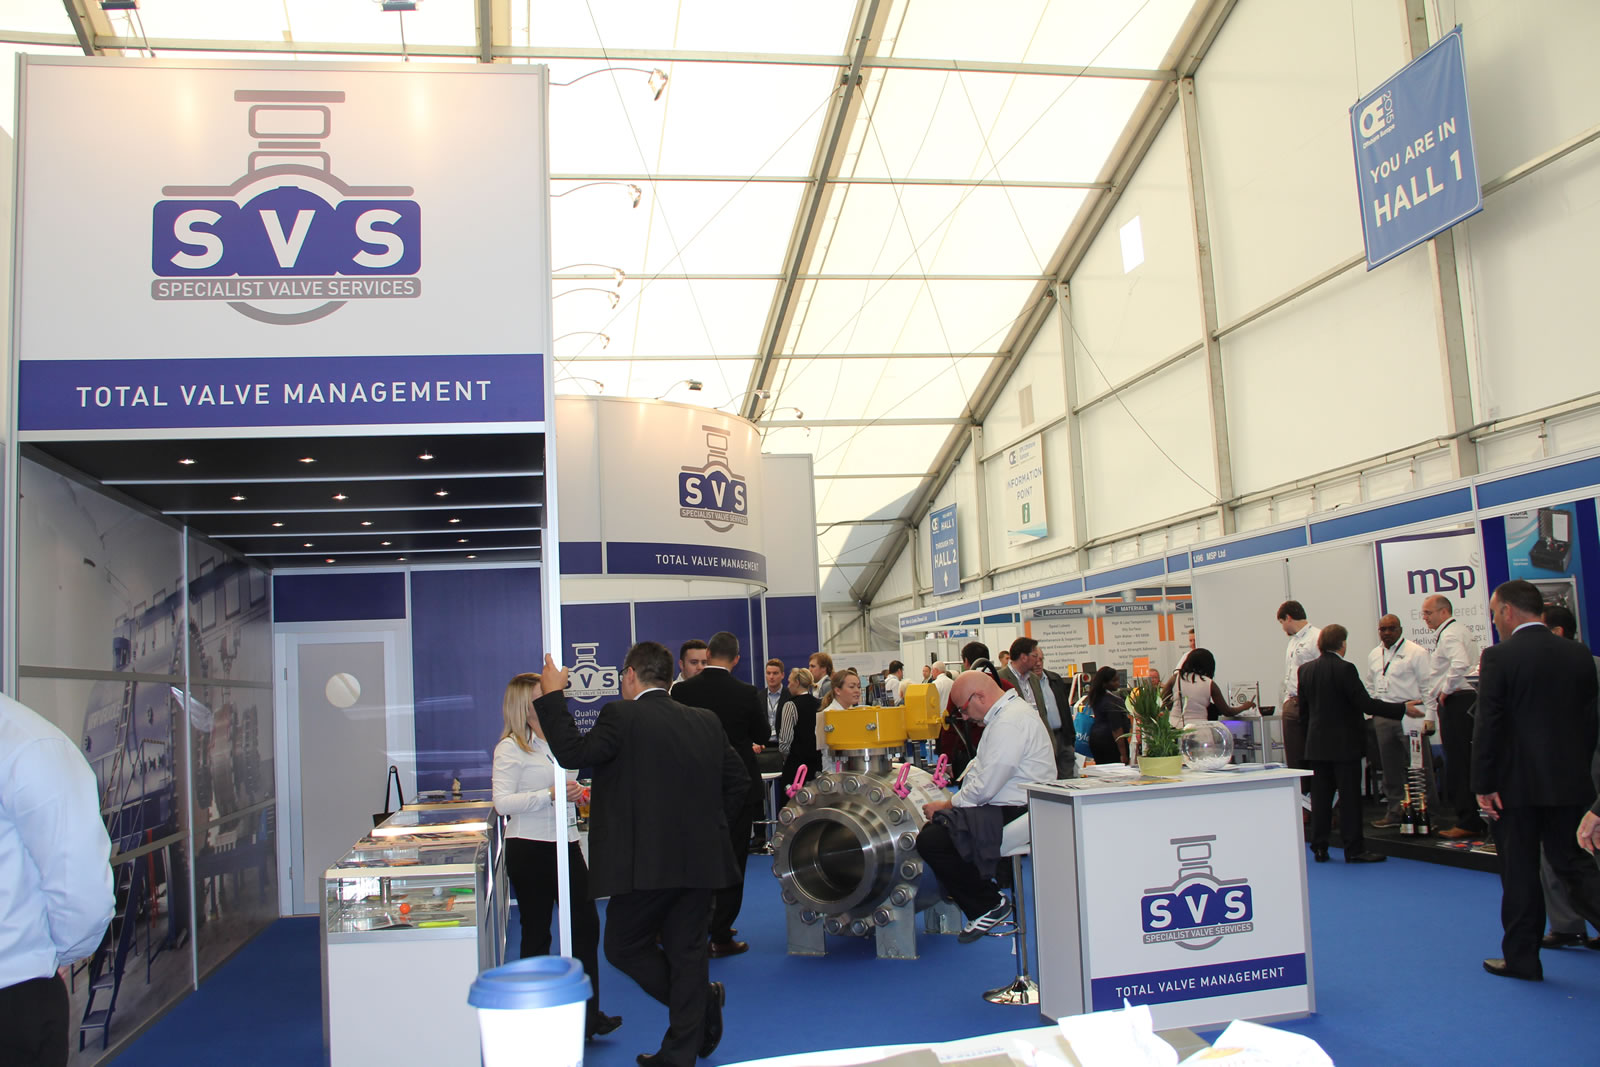 SVS Exhibit at Offshore Europe 2015-image-5